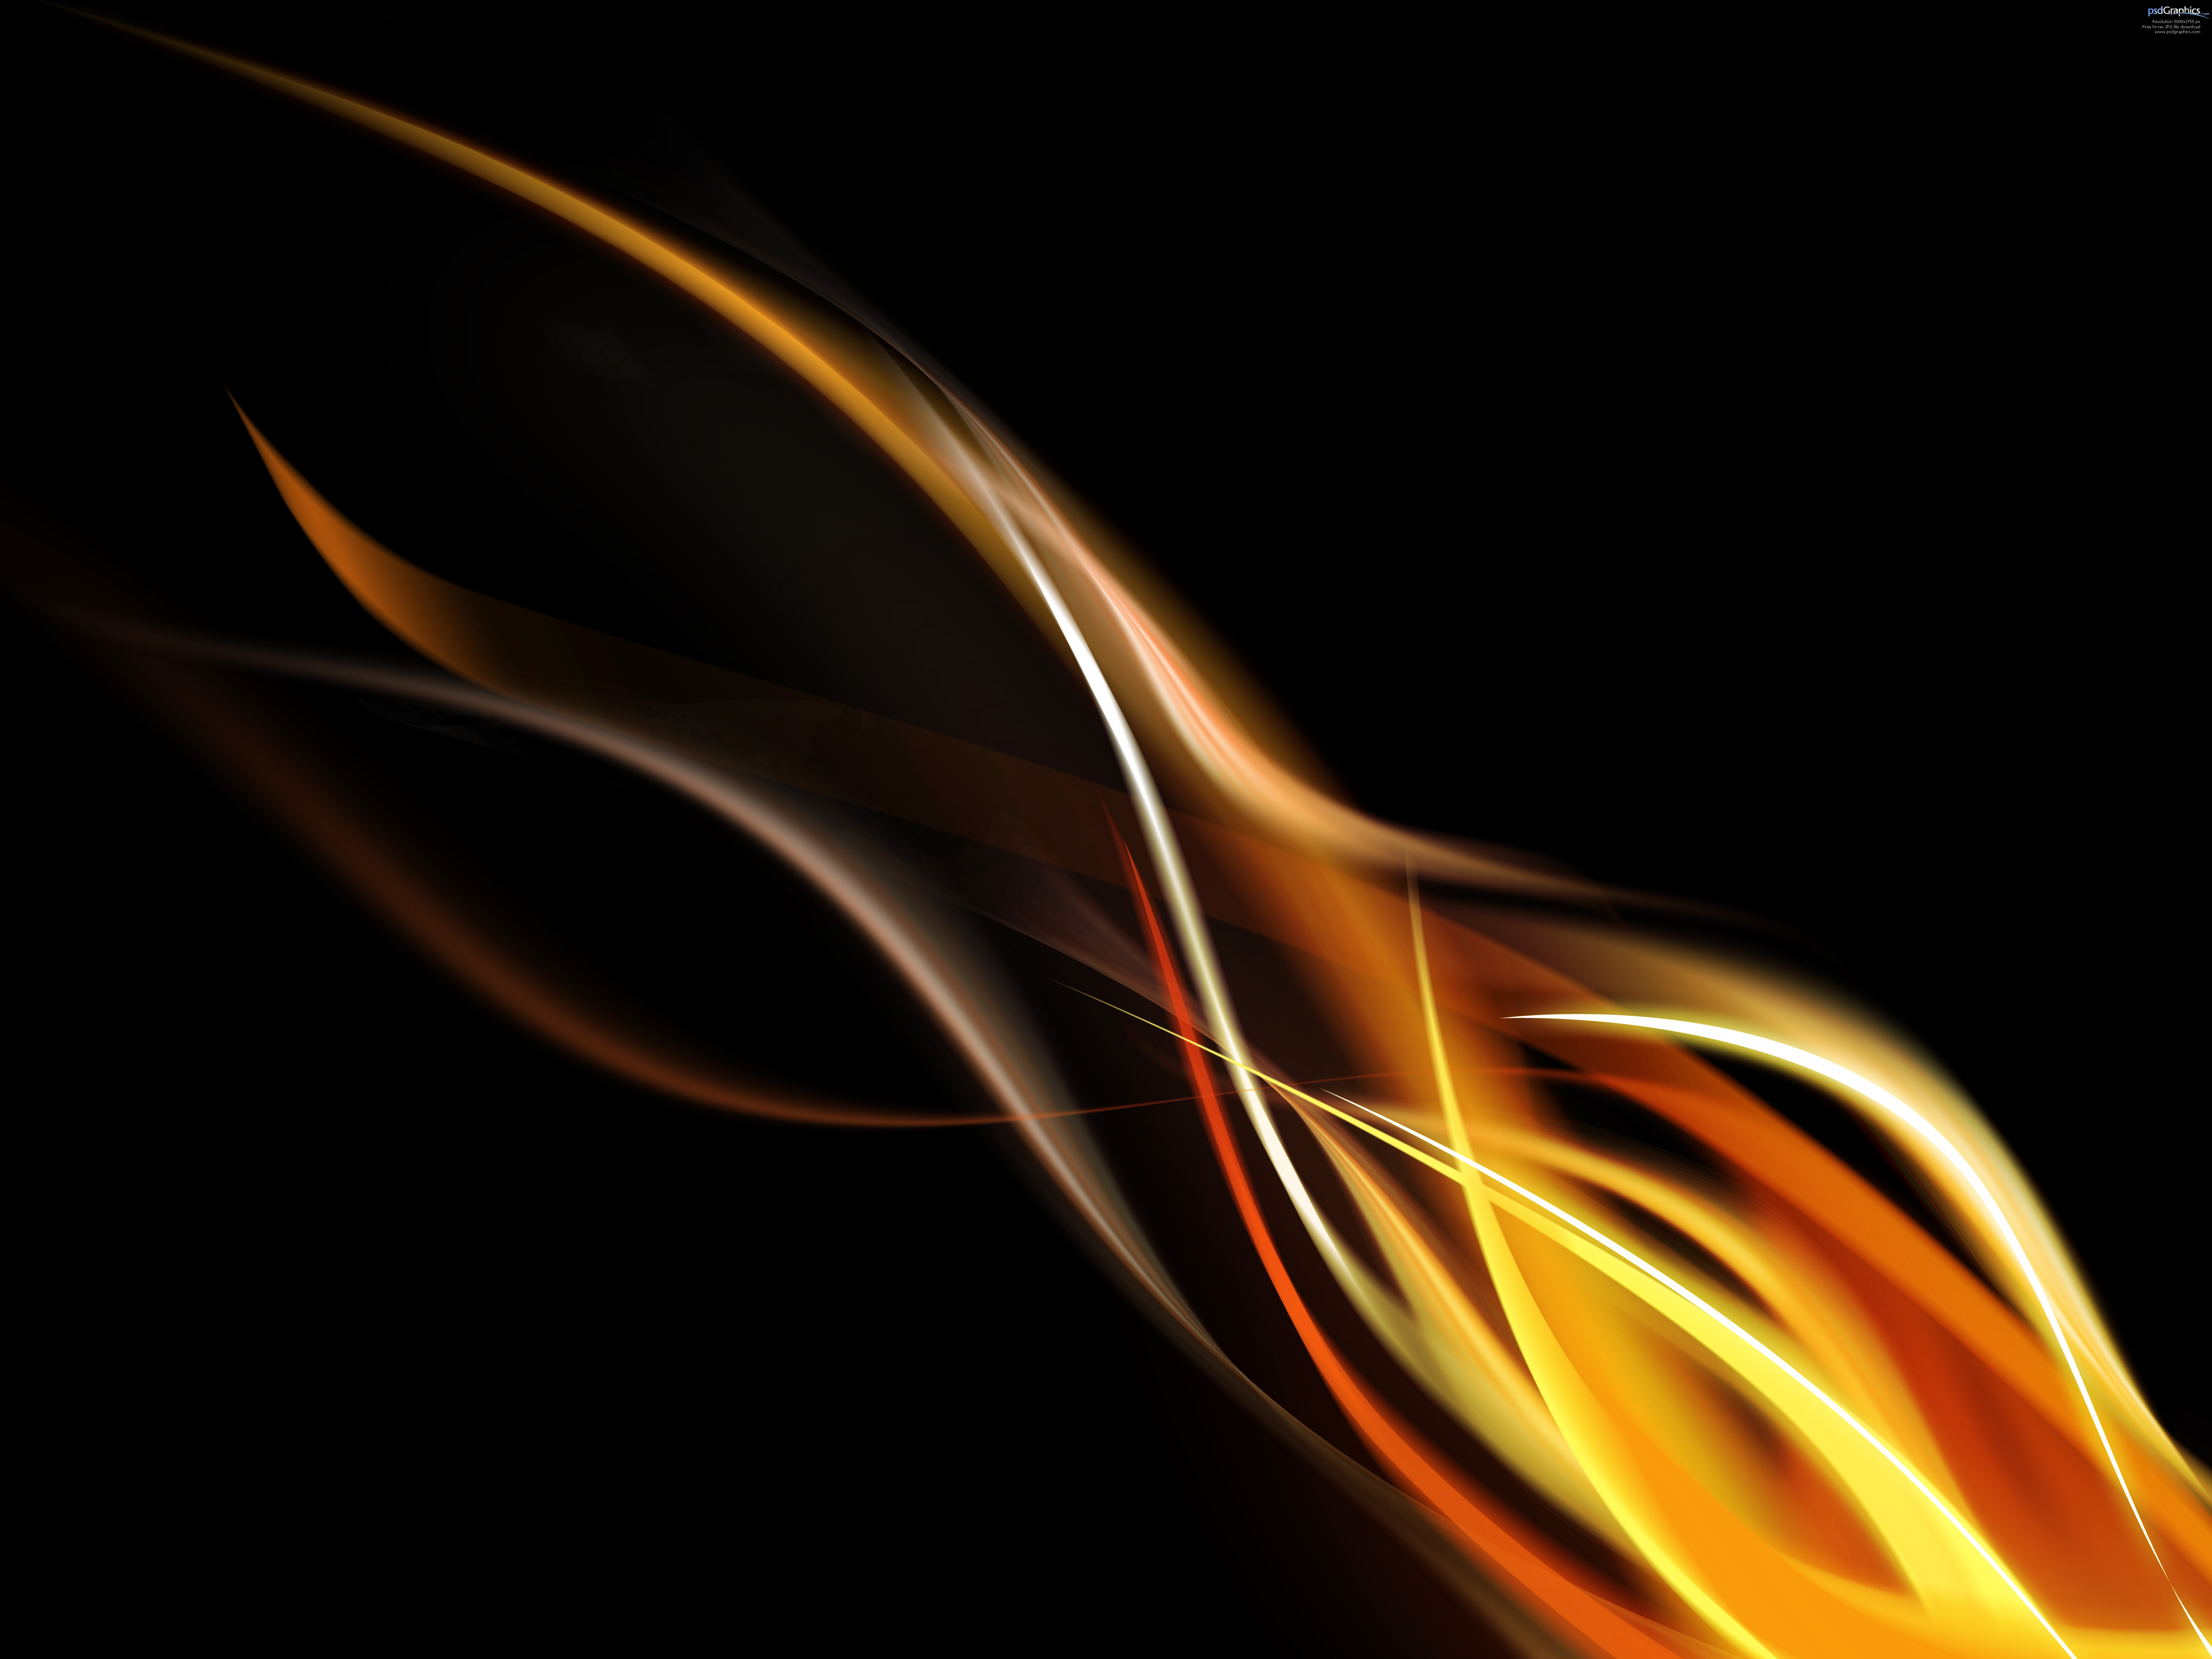 and set any of these stunning fire images as your desktop wallpaper 5000x3750